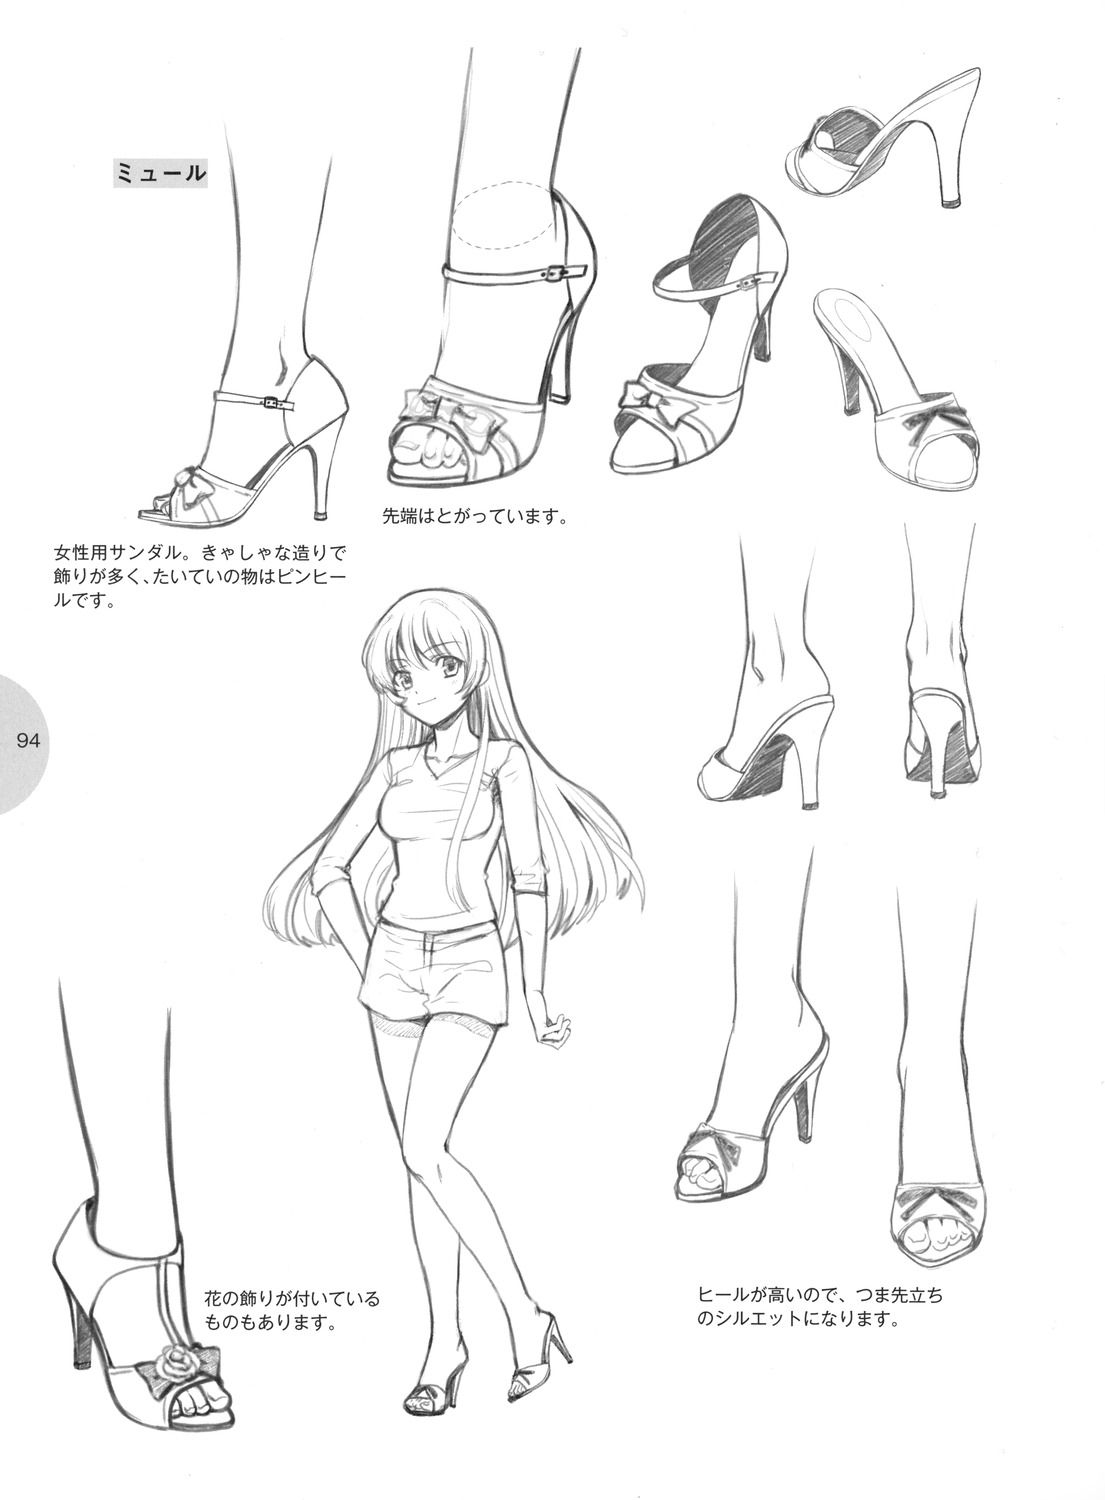 Knickerweasels: Drawing Feet And Shoes From Ȑ�えキャラクターの描き方 (how To Draw